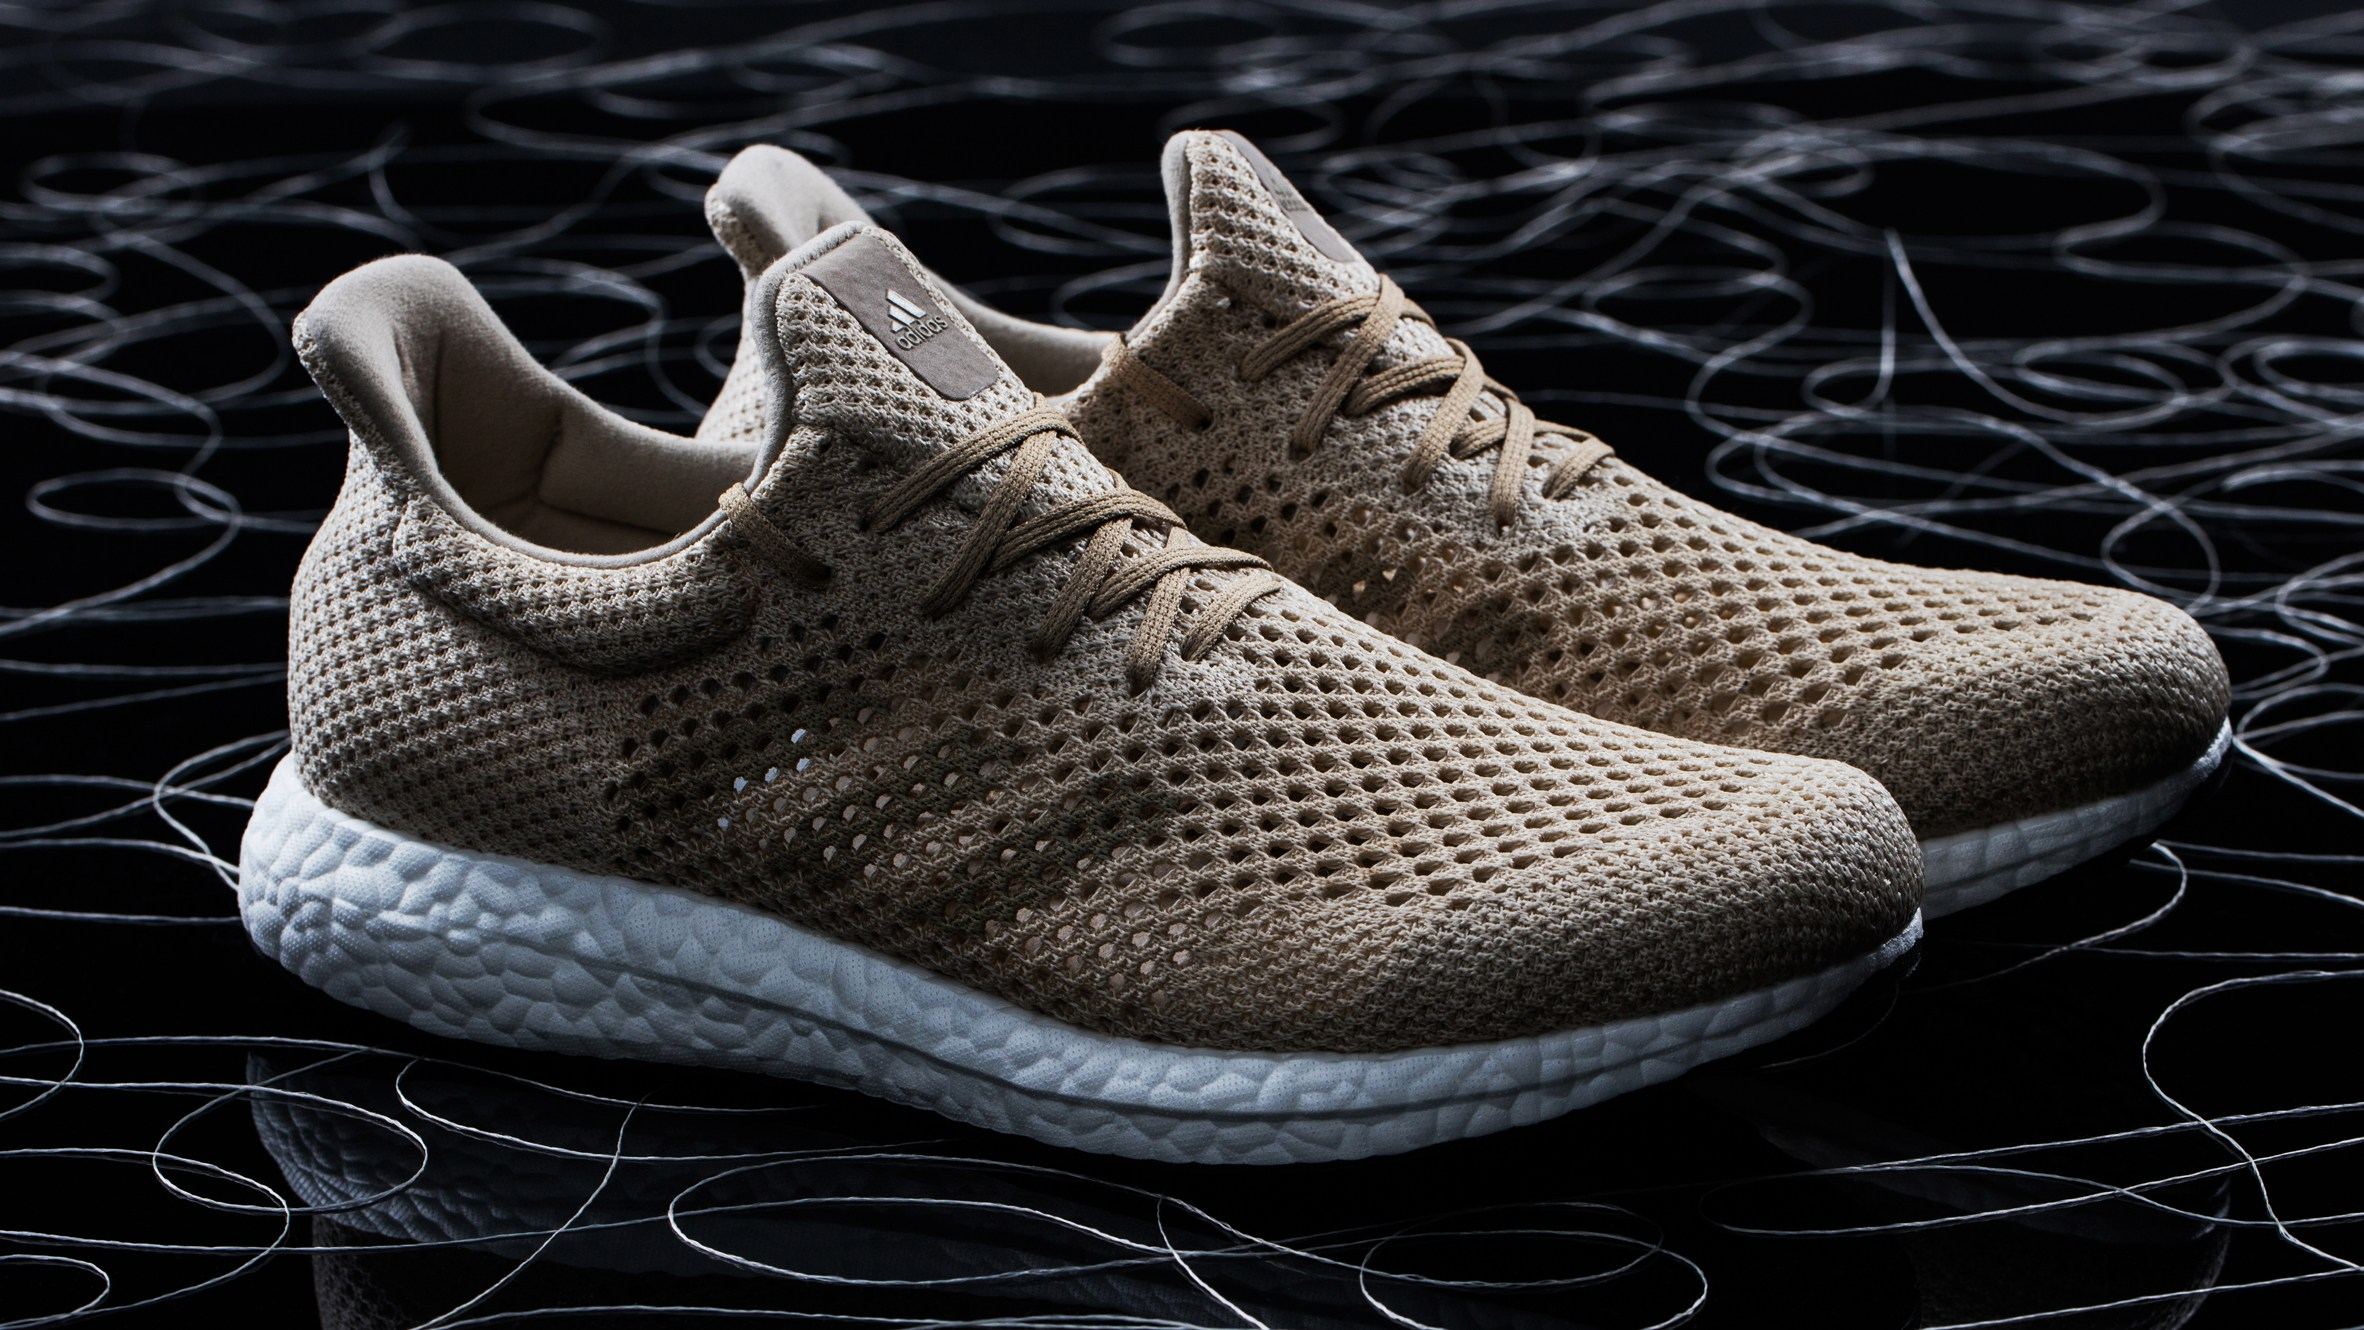 Adidas' eco friendly sneaker is the new wave theGrio